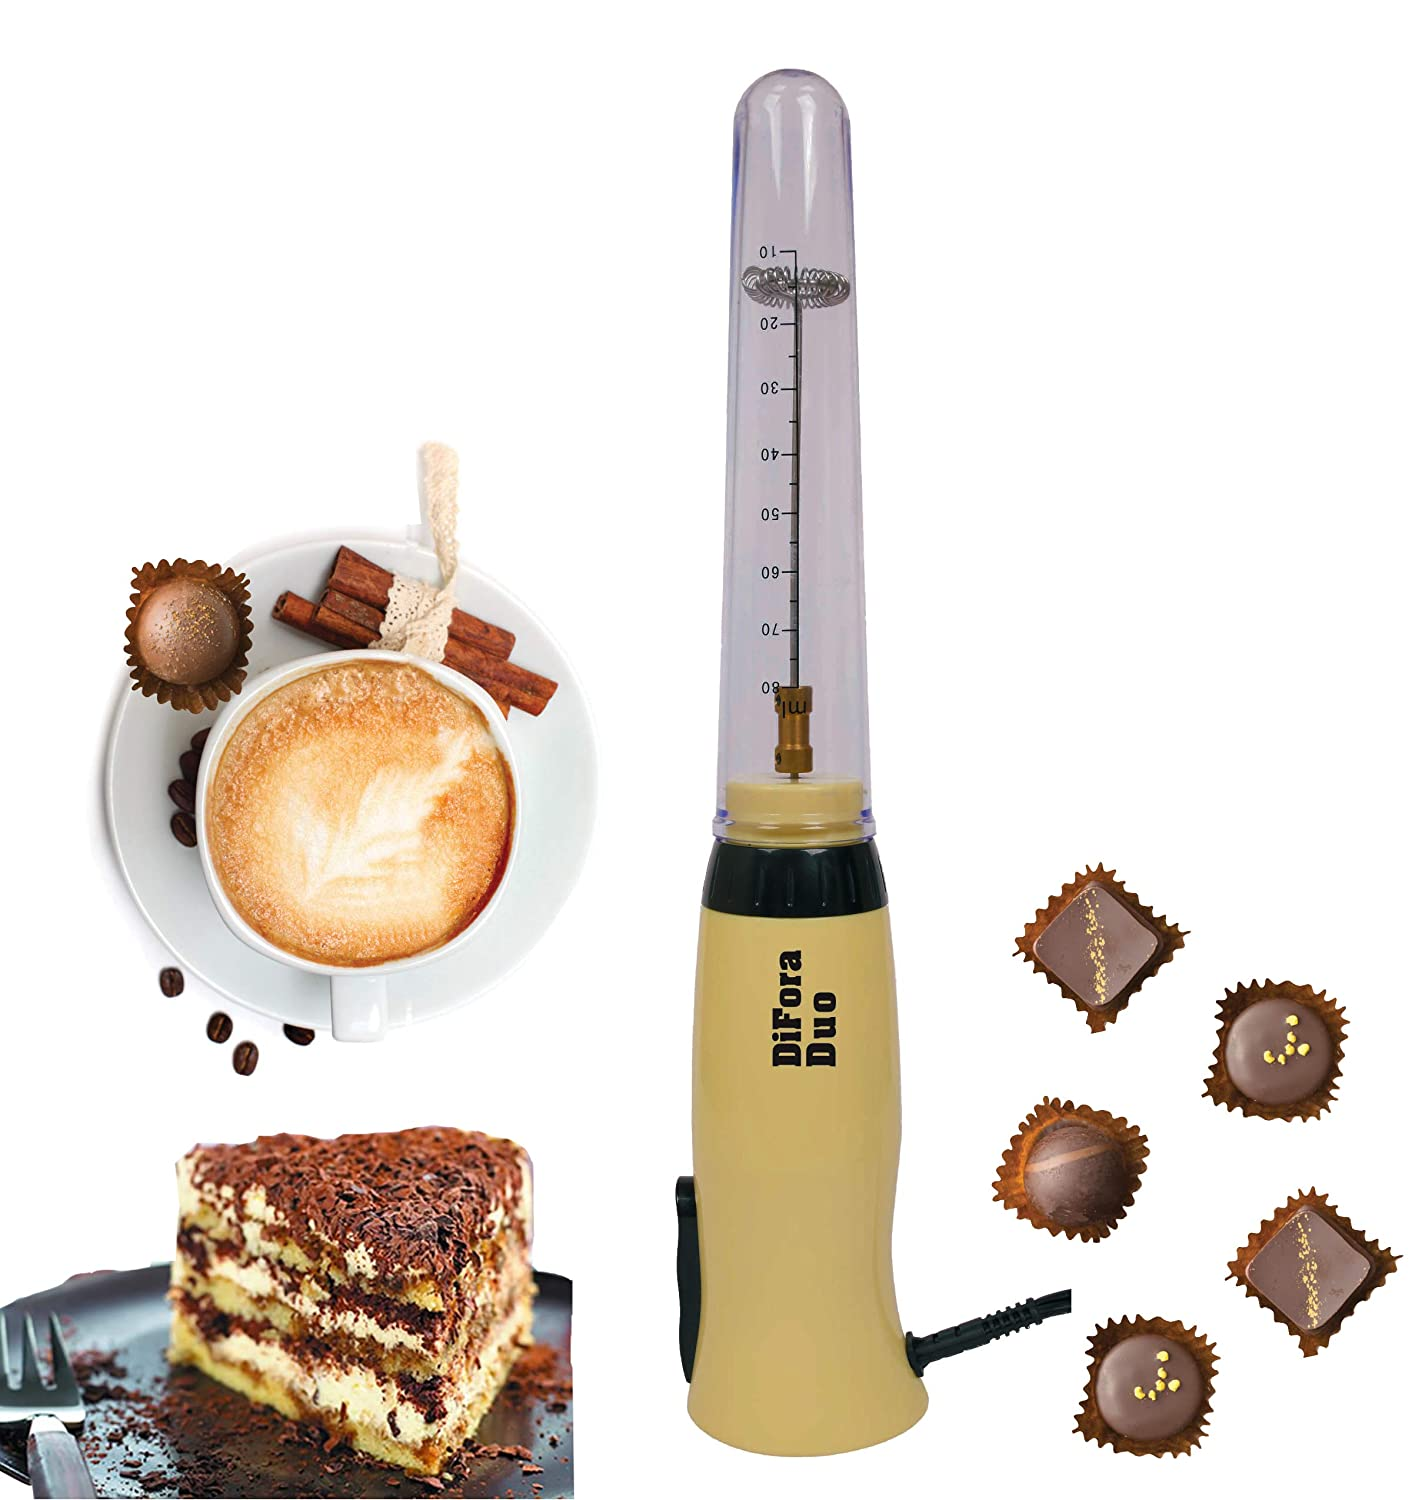 New Premium Class Difora Duo Milk Frother and Frappe Maker, UNIQUE DUAL Hi/Lo Speed, 30W, 120V. Super Reliable Motor, Made to Stand on Counter